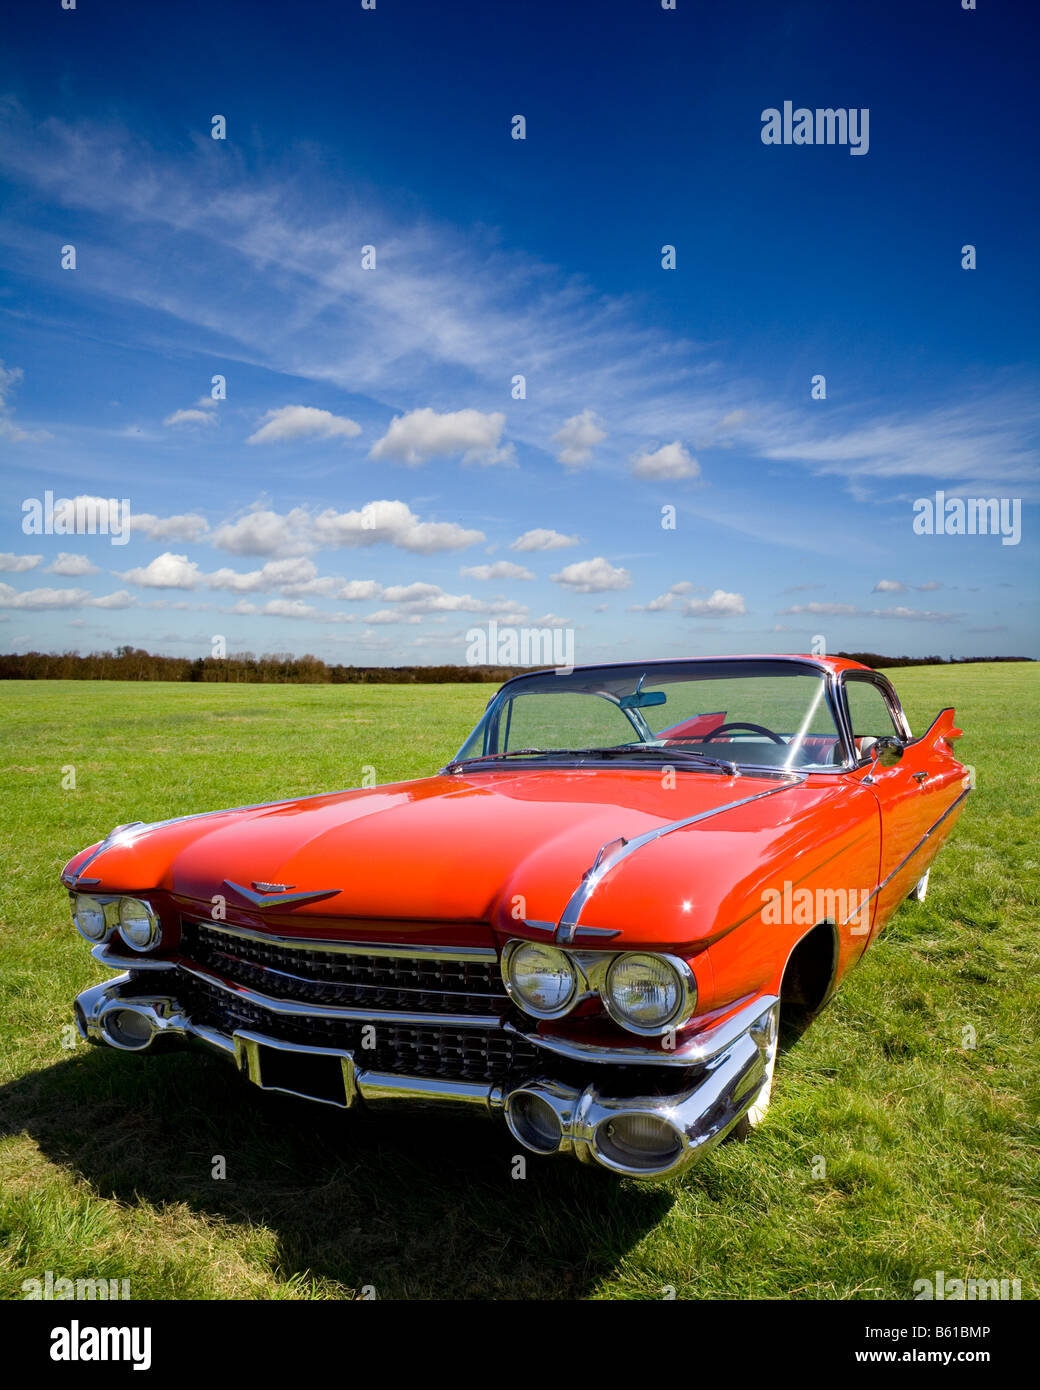 hight resolution of a classic red 1959 cadillac coupe de ville the epitome of american automotive style and elegance